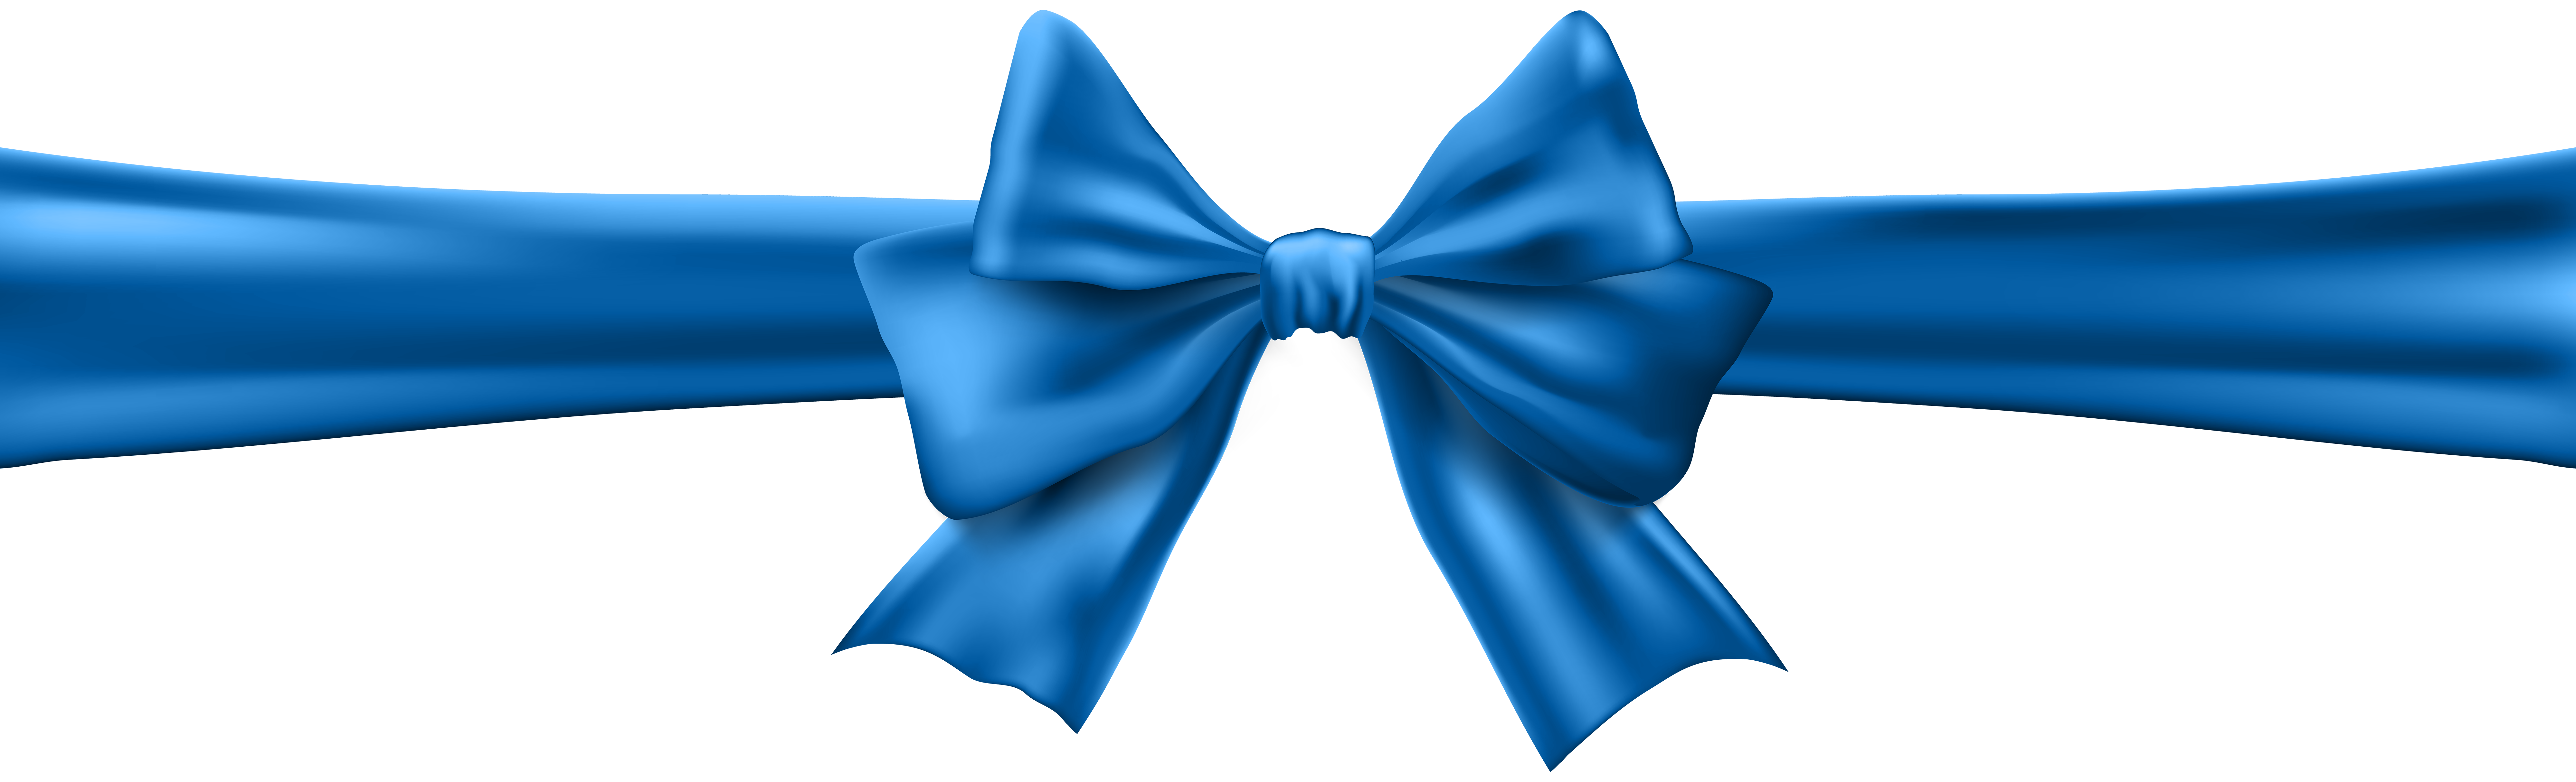 Blue ribbon png. Bow with clip art